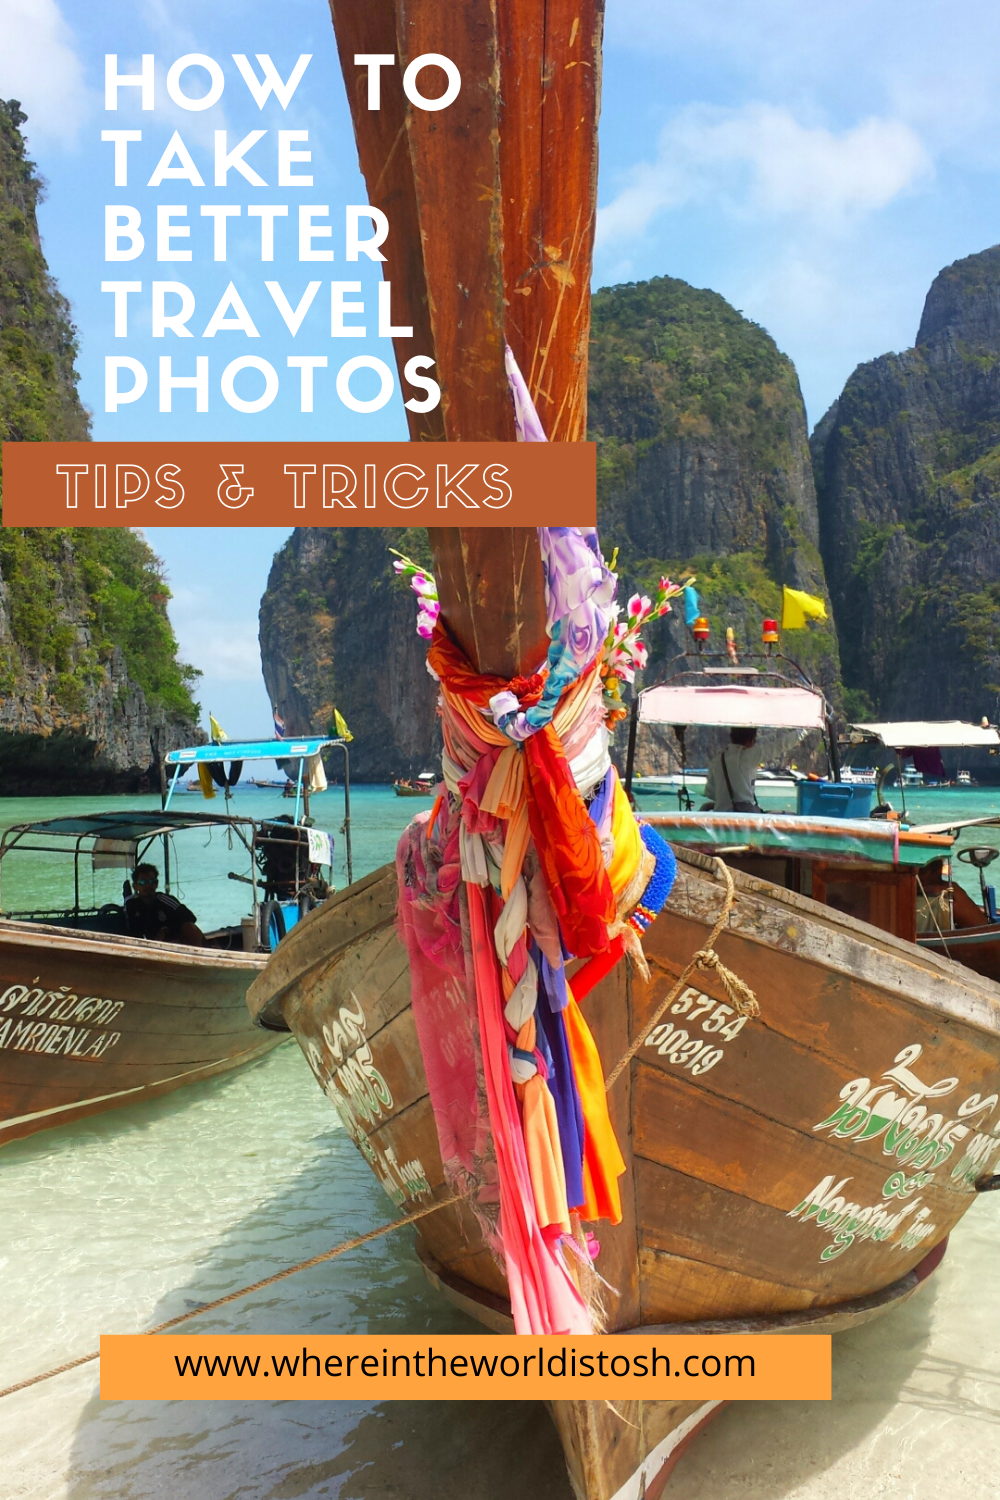 How To Take Better Travel Photos - Tips And Tricks